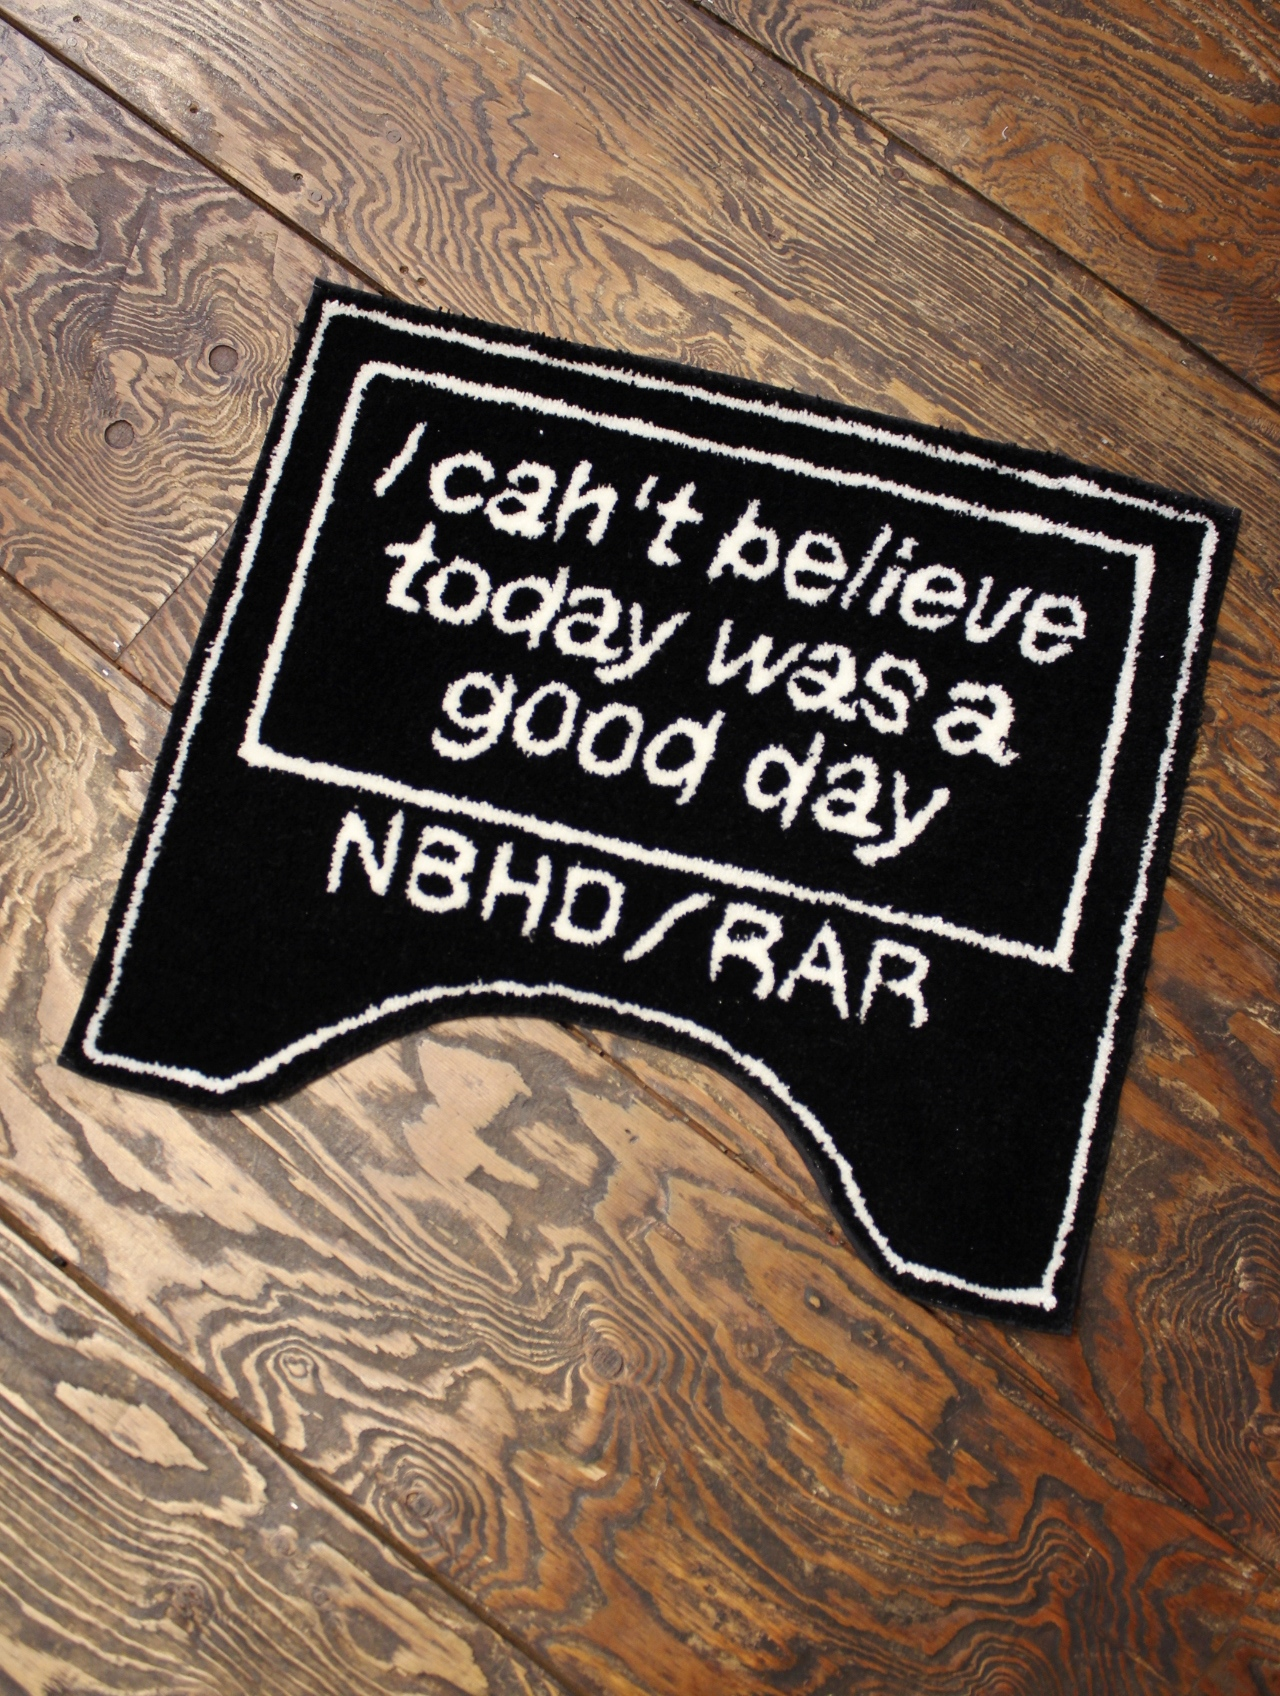 NEIGHBORHOOD × ROUGH AND RUGGED  「 NBHD×RARDC TOILET RAG 」 トイレラグマット